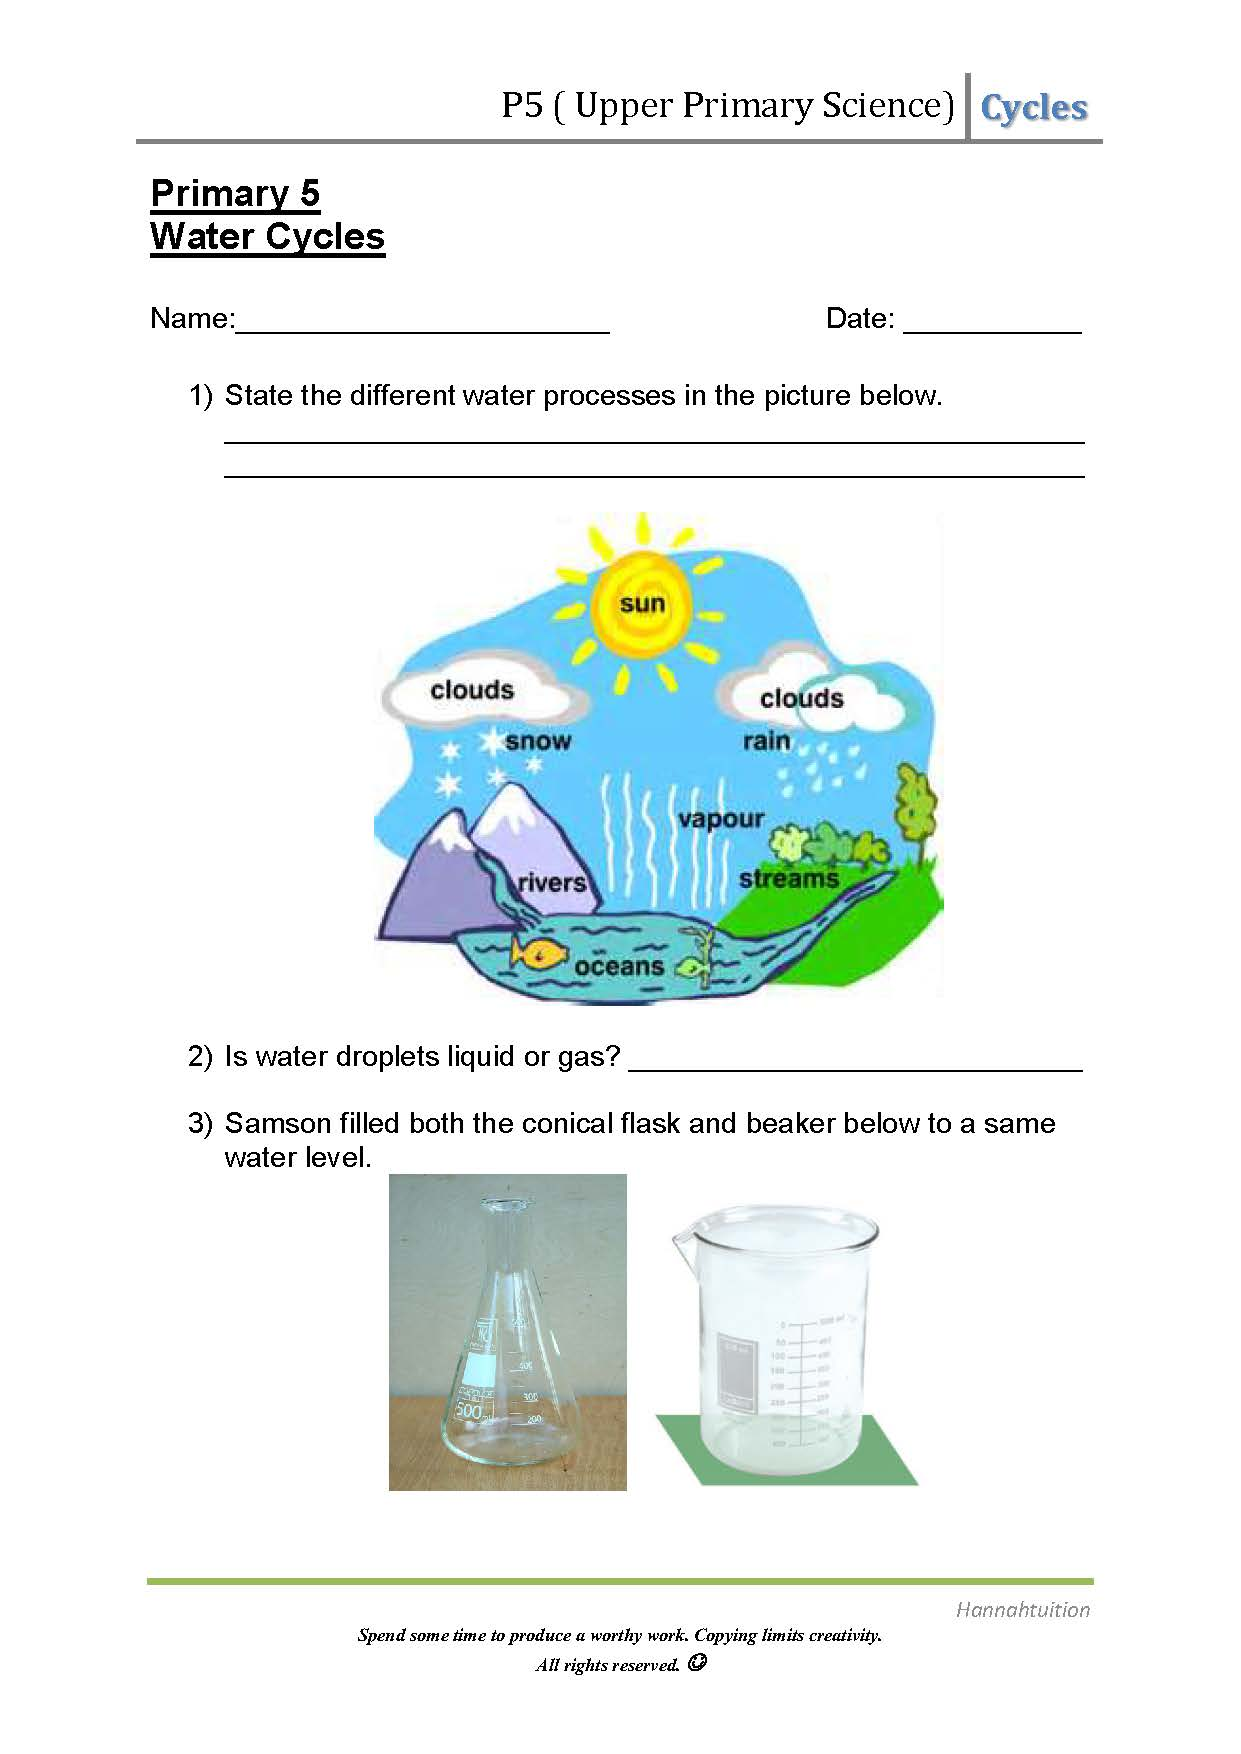 Primary 5 Science Water Cycles